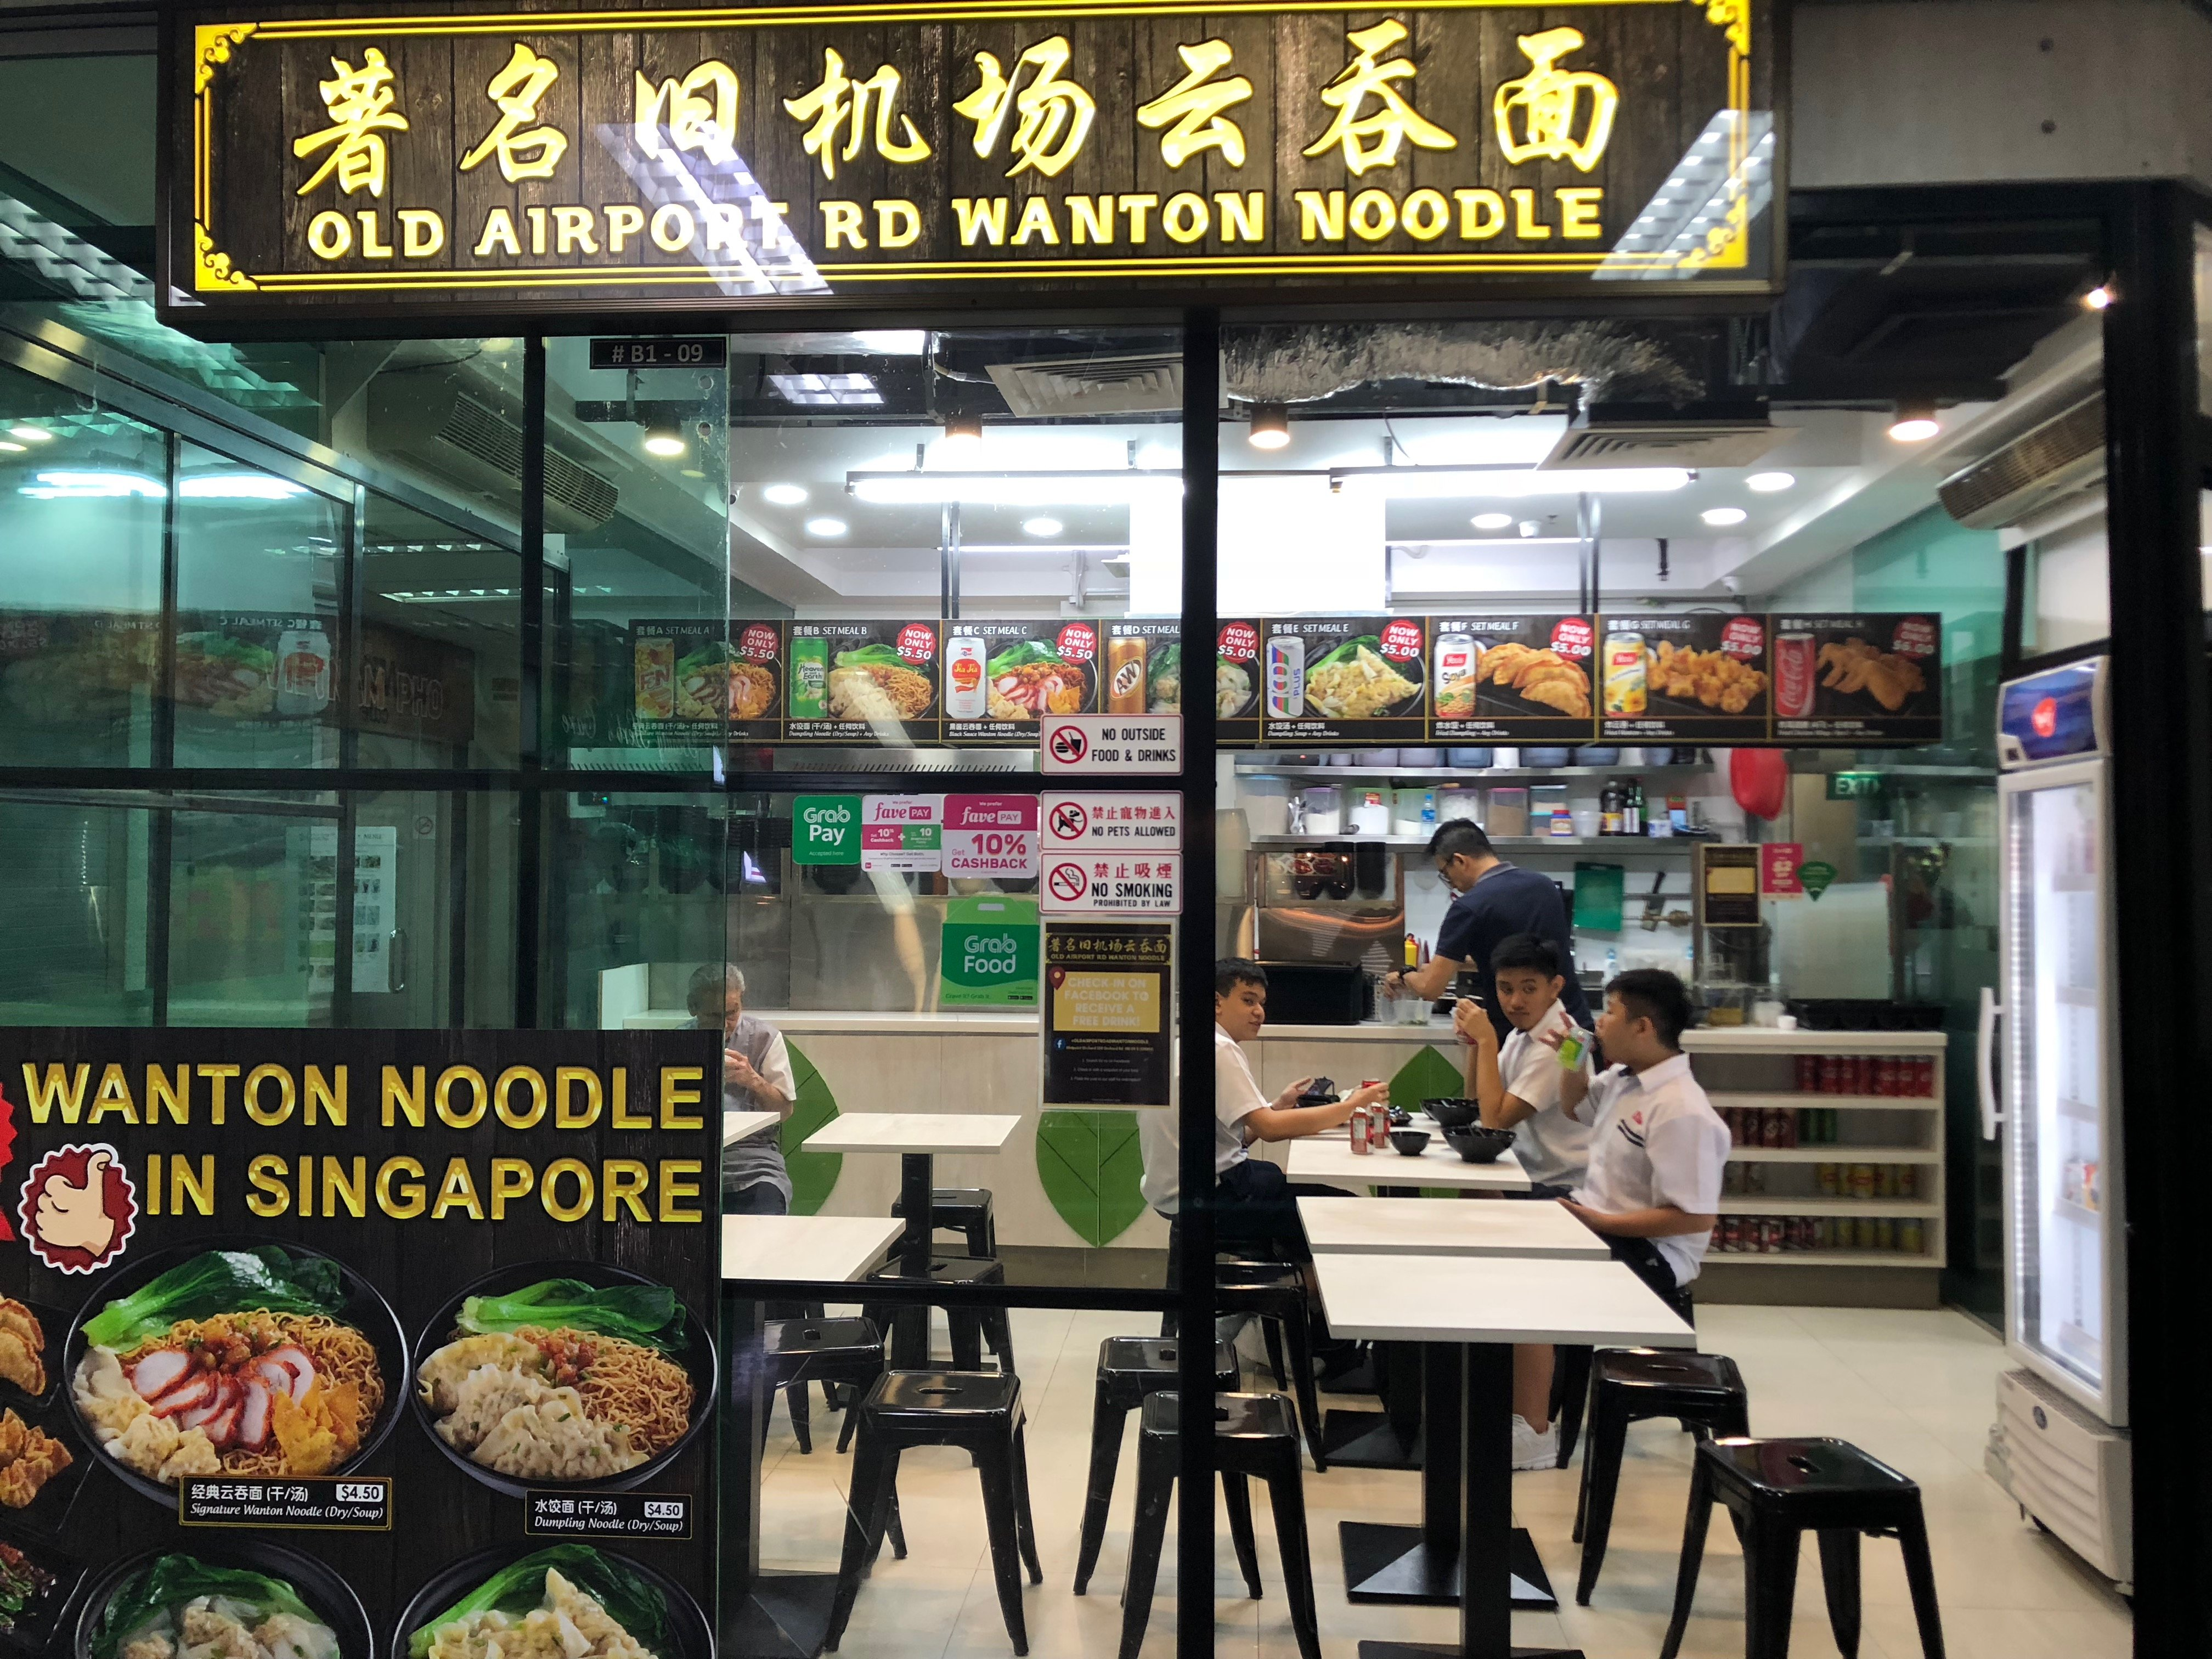 The shop front of Old Airport Road Wanton Noodle.